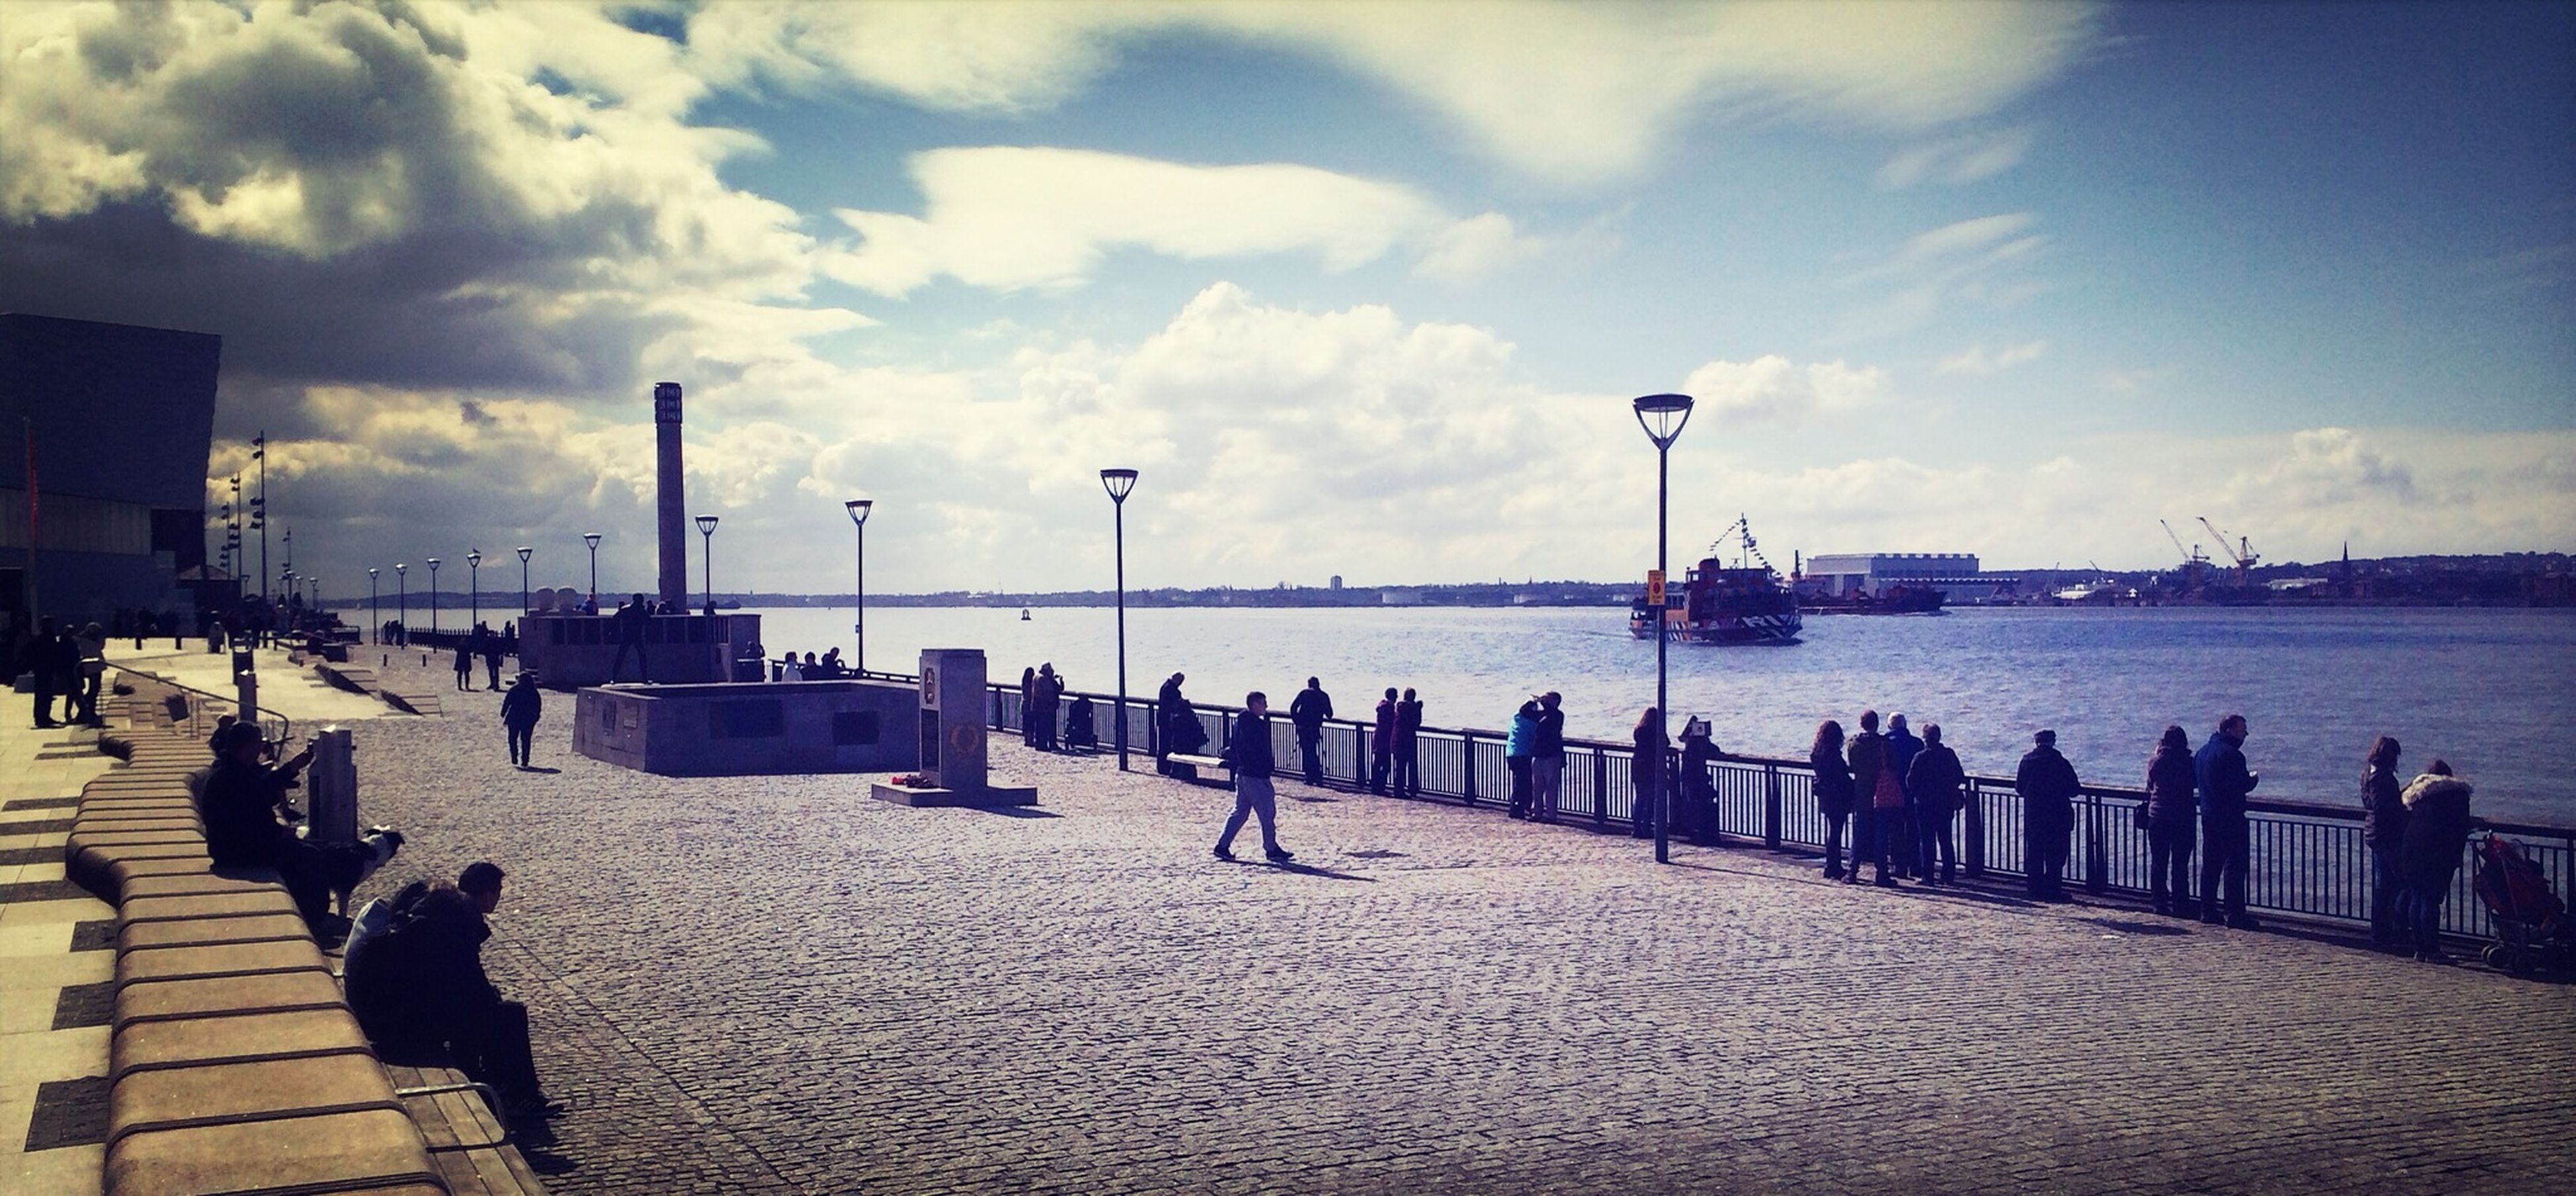 sky, sea, water, beach, cloud - sky, built structure, pier, architecture, shore, cloud, incidental people, tranquility, in a row, sand, nature, street light, tranquil scene, building exterior, cloudy, scenics